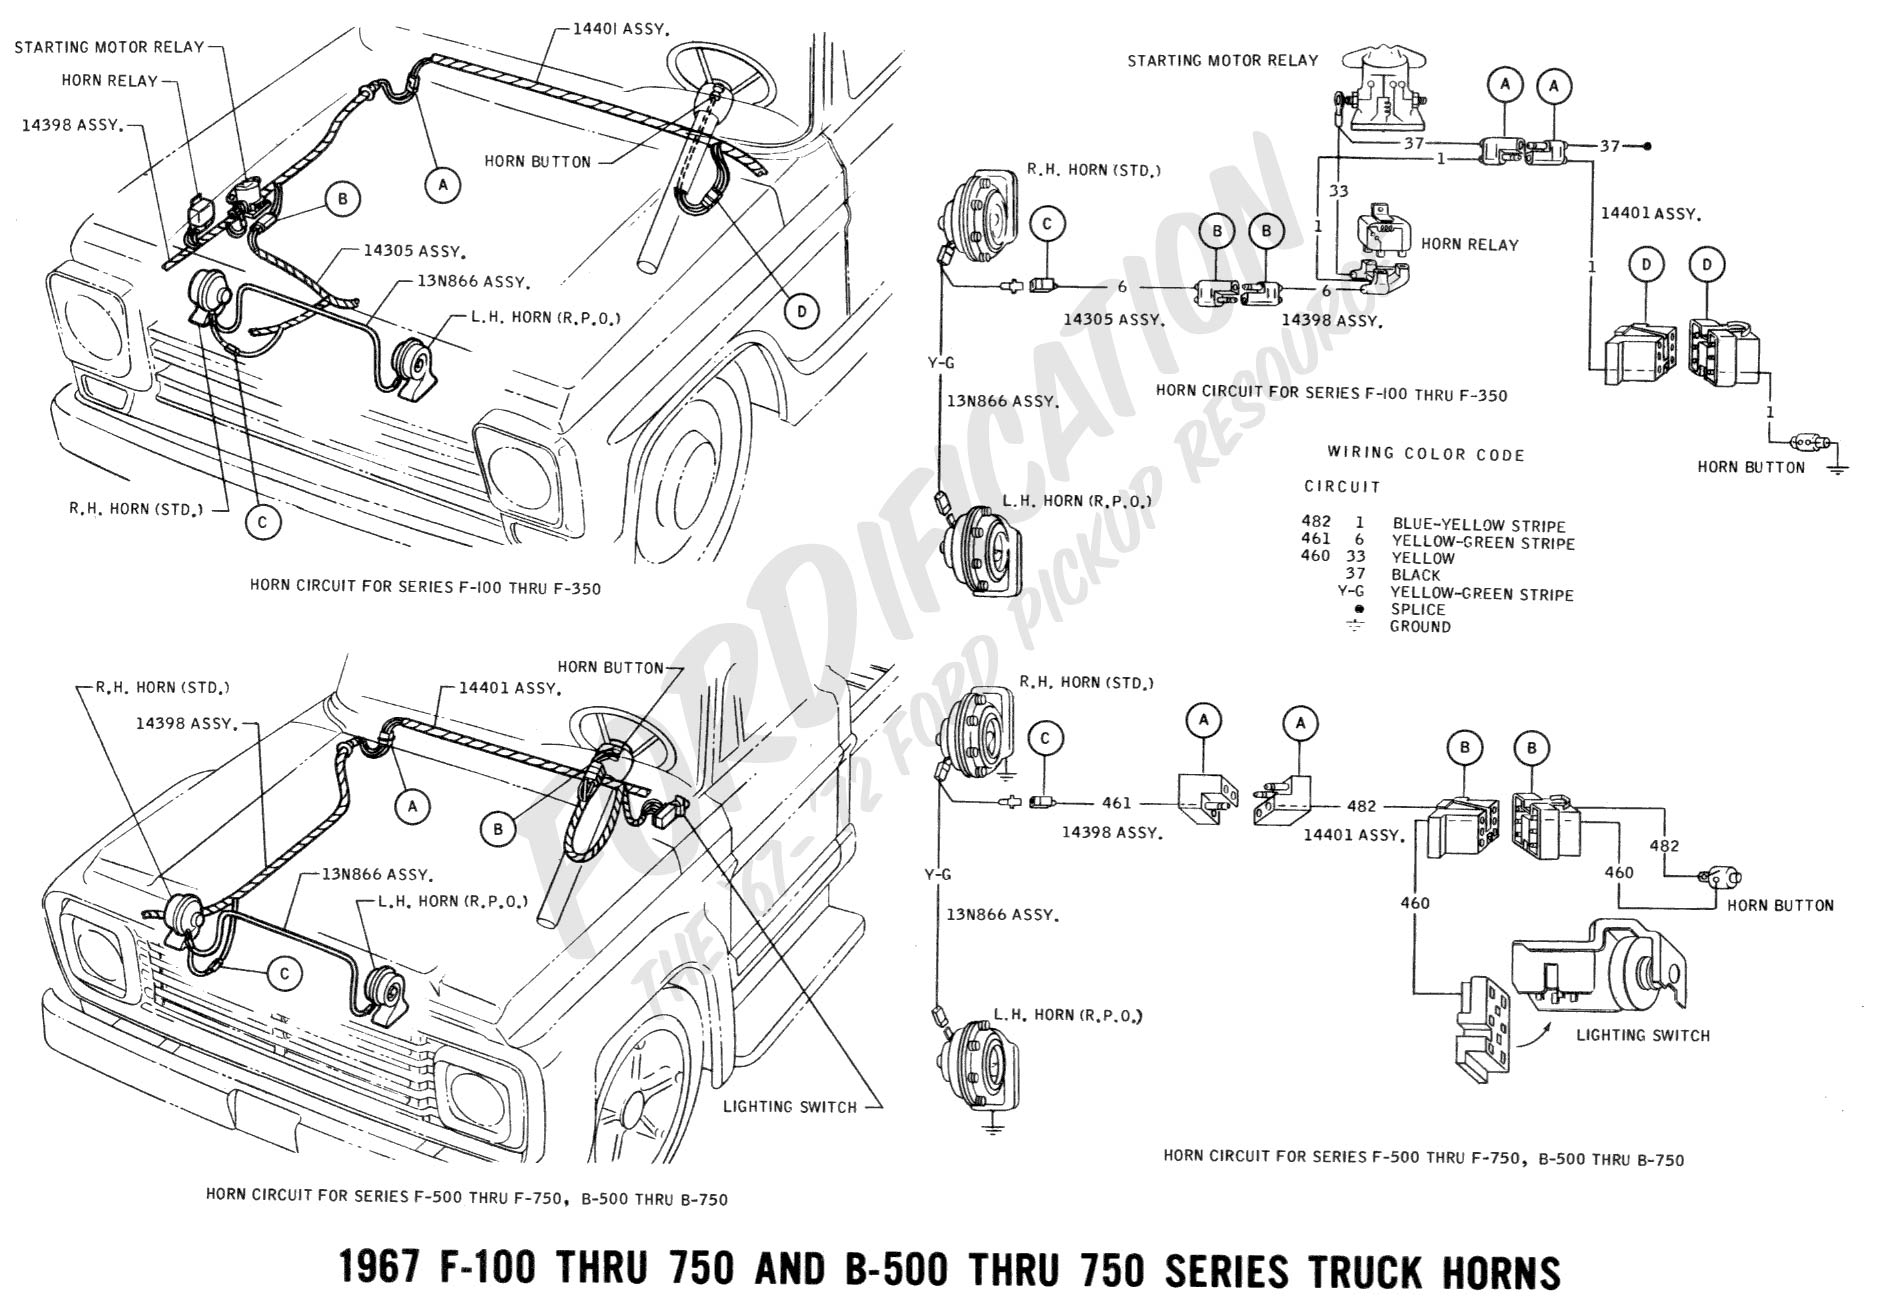 1967 ford pickup wiring diagram ford truck technical drawings and schematics - section h - wiring diagrams 1967 ford f250 wiring diagram